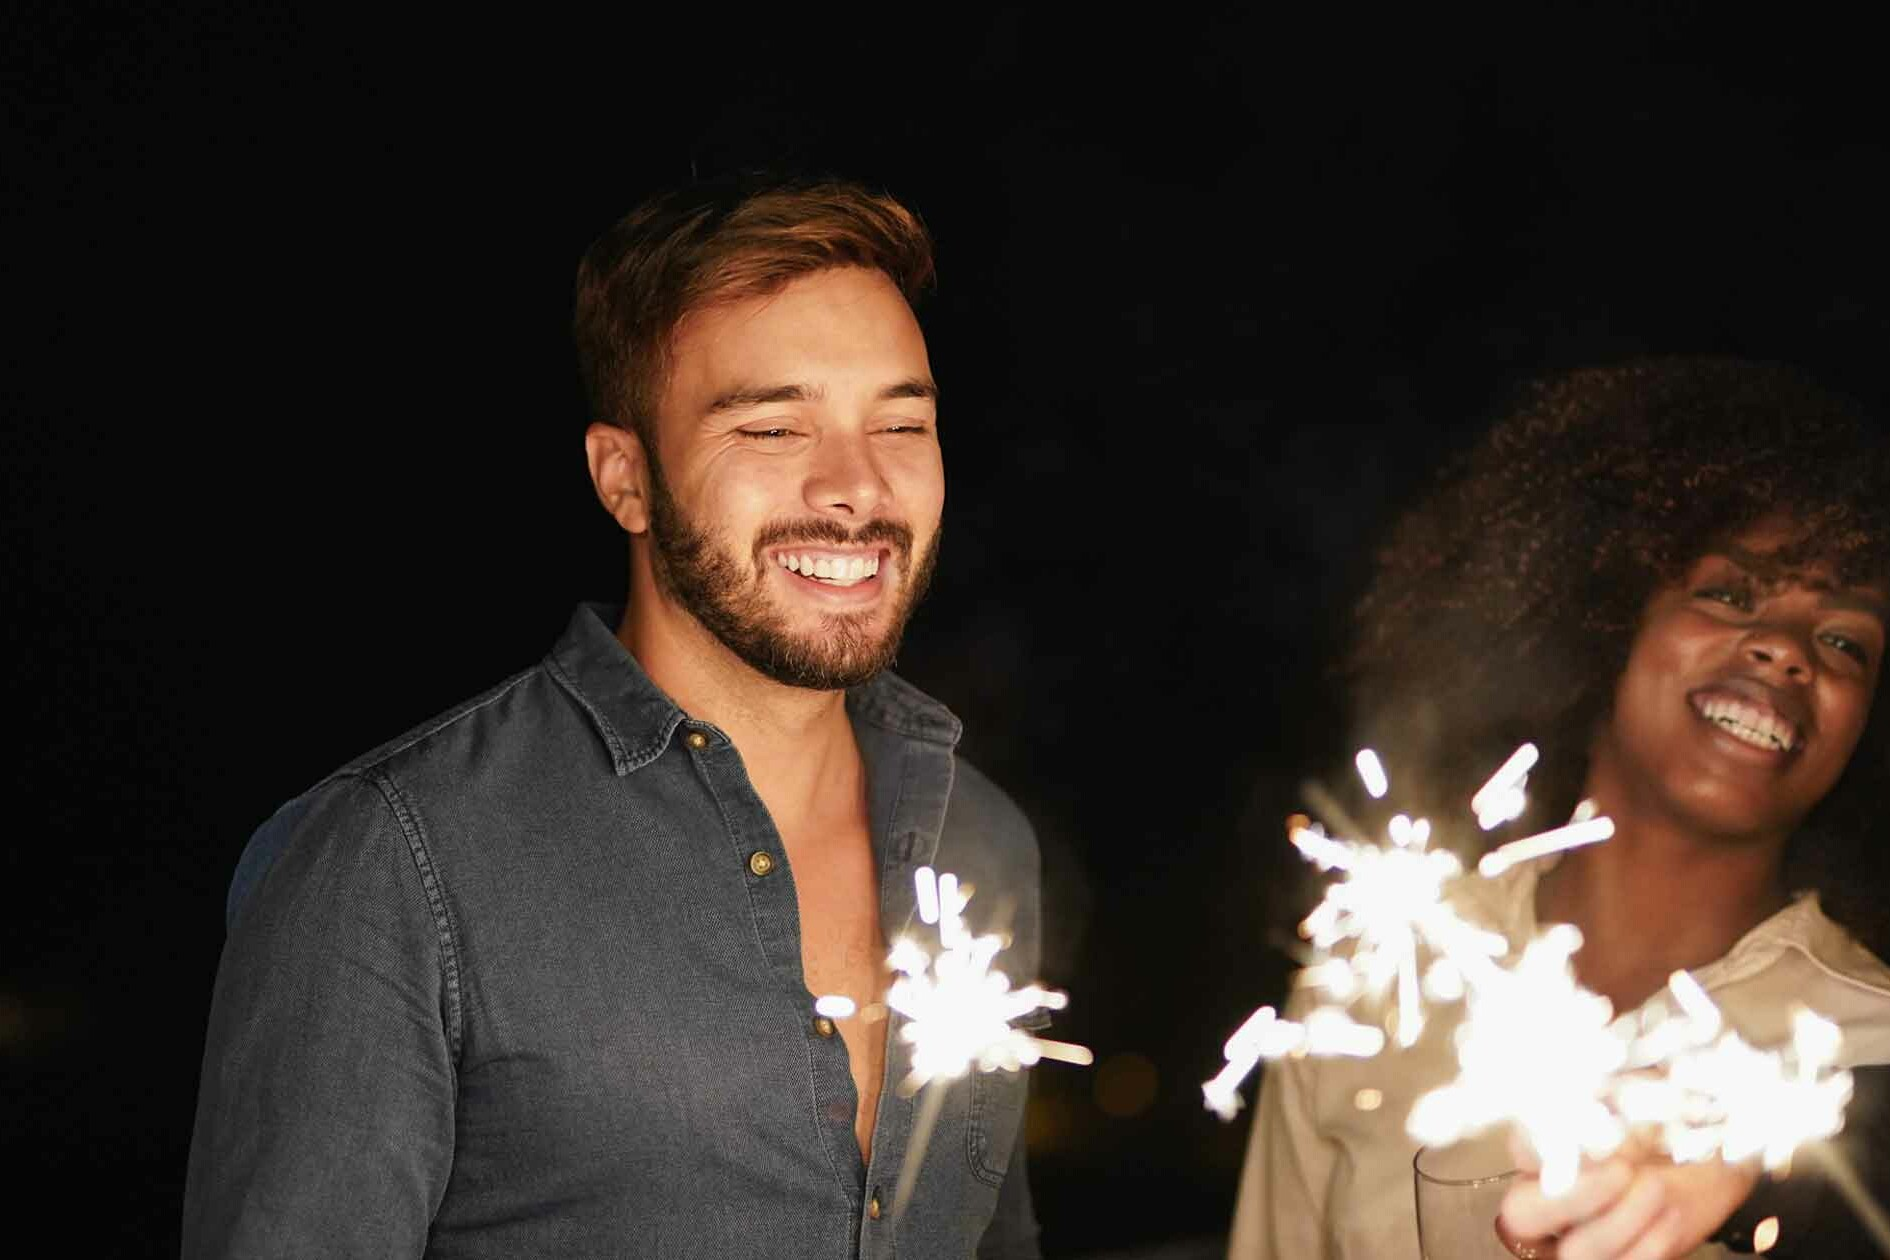 Couple with Sparklers on NYE - Reflect on Your Life